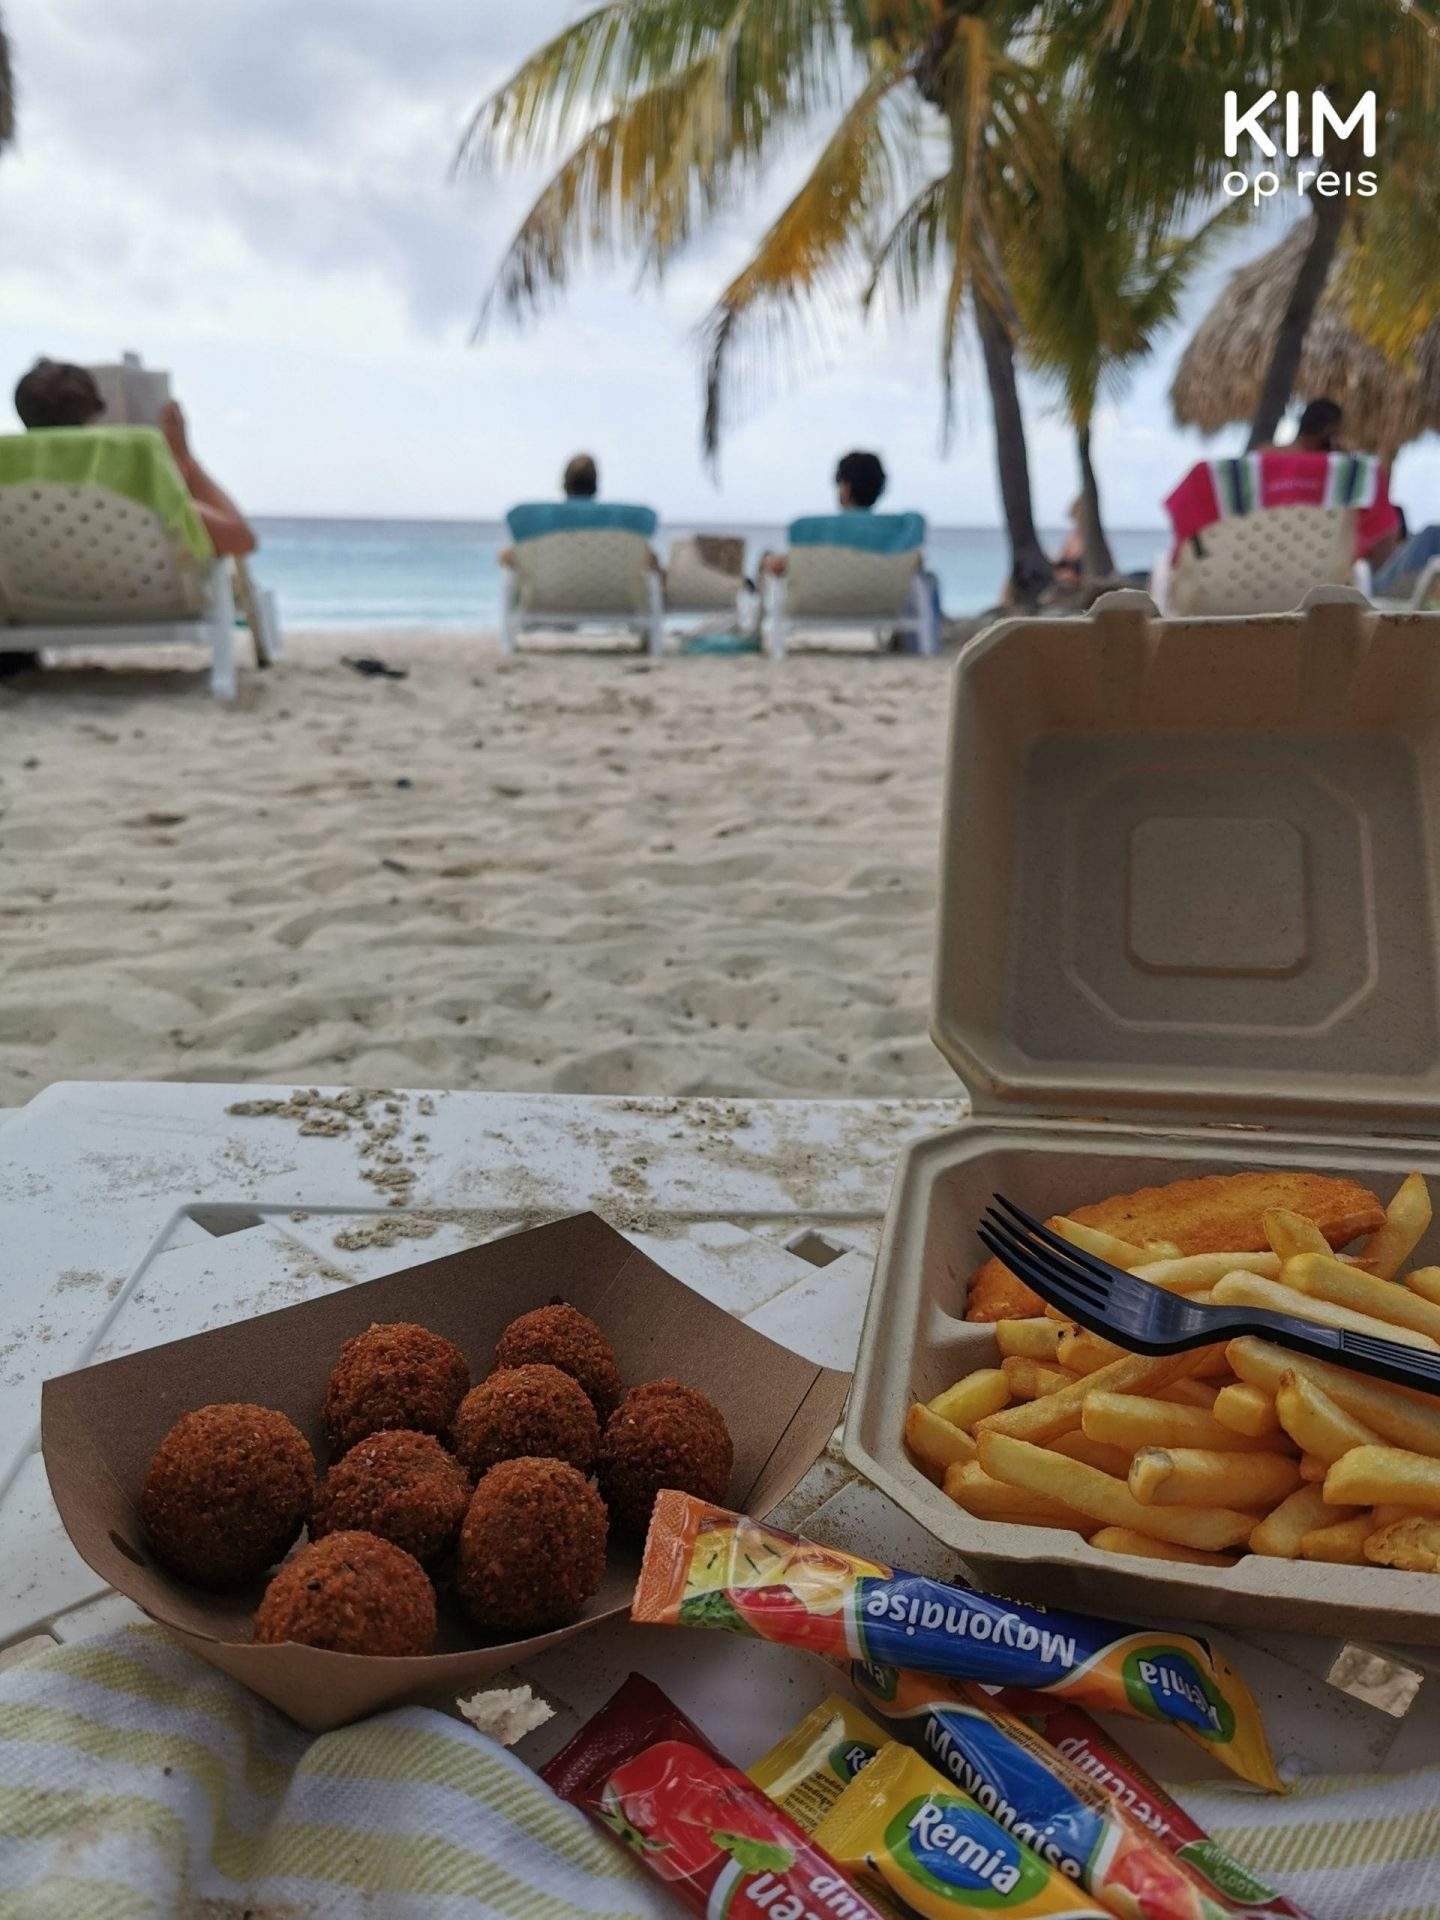 Fries and bitterballen on the beach Curaçao: picture of junk food on a beach lounger